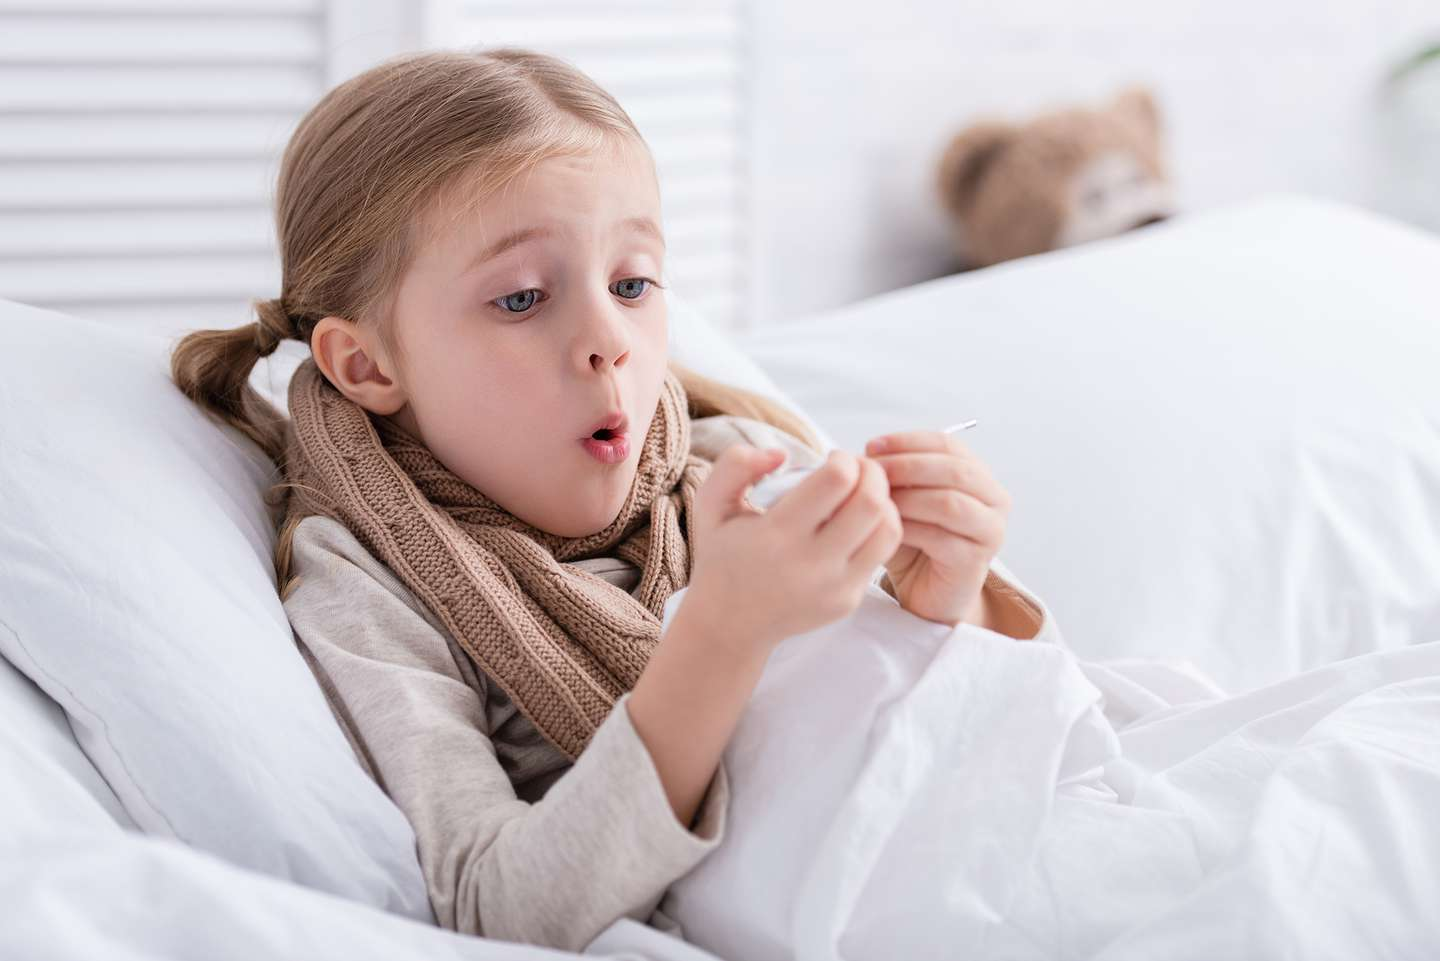 shocked-sick-child-with-scarf-over-neck-lying-in-b-KRDBWP6.jpg